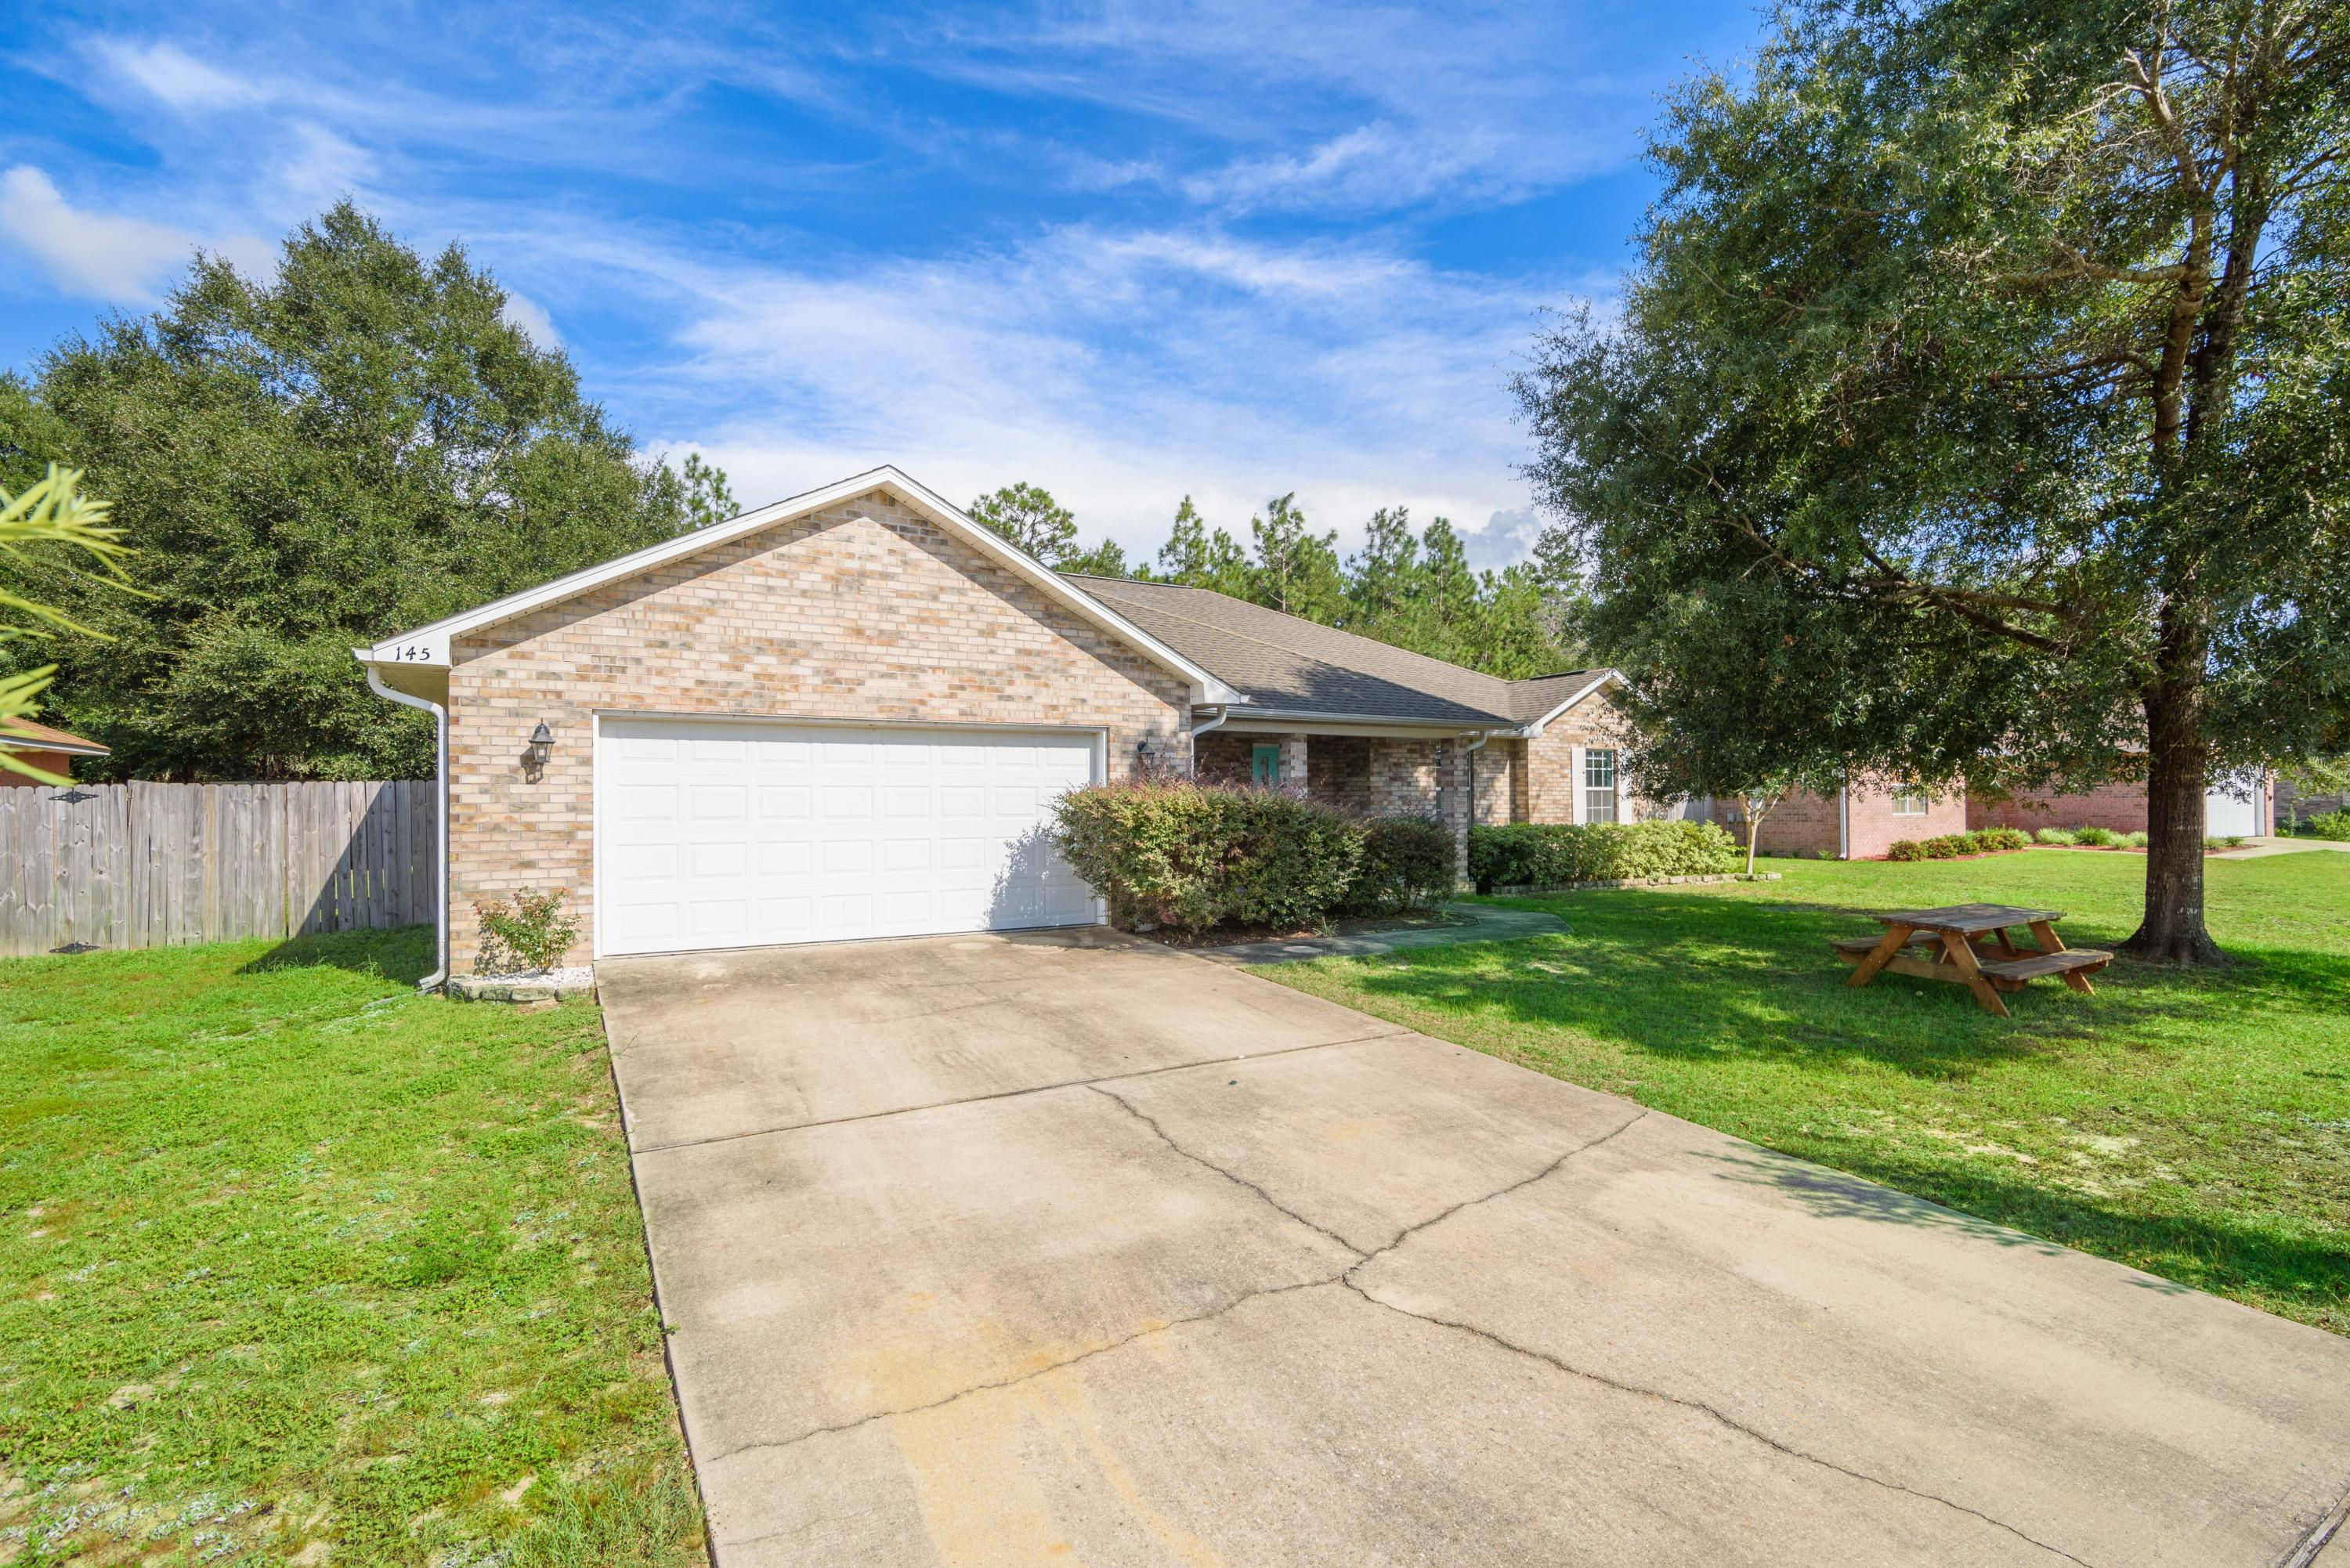 Photo of home for sale at 145 Conquest, Crestview FL